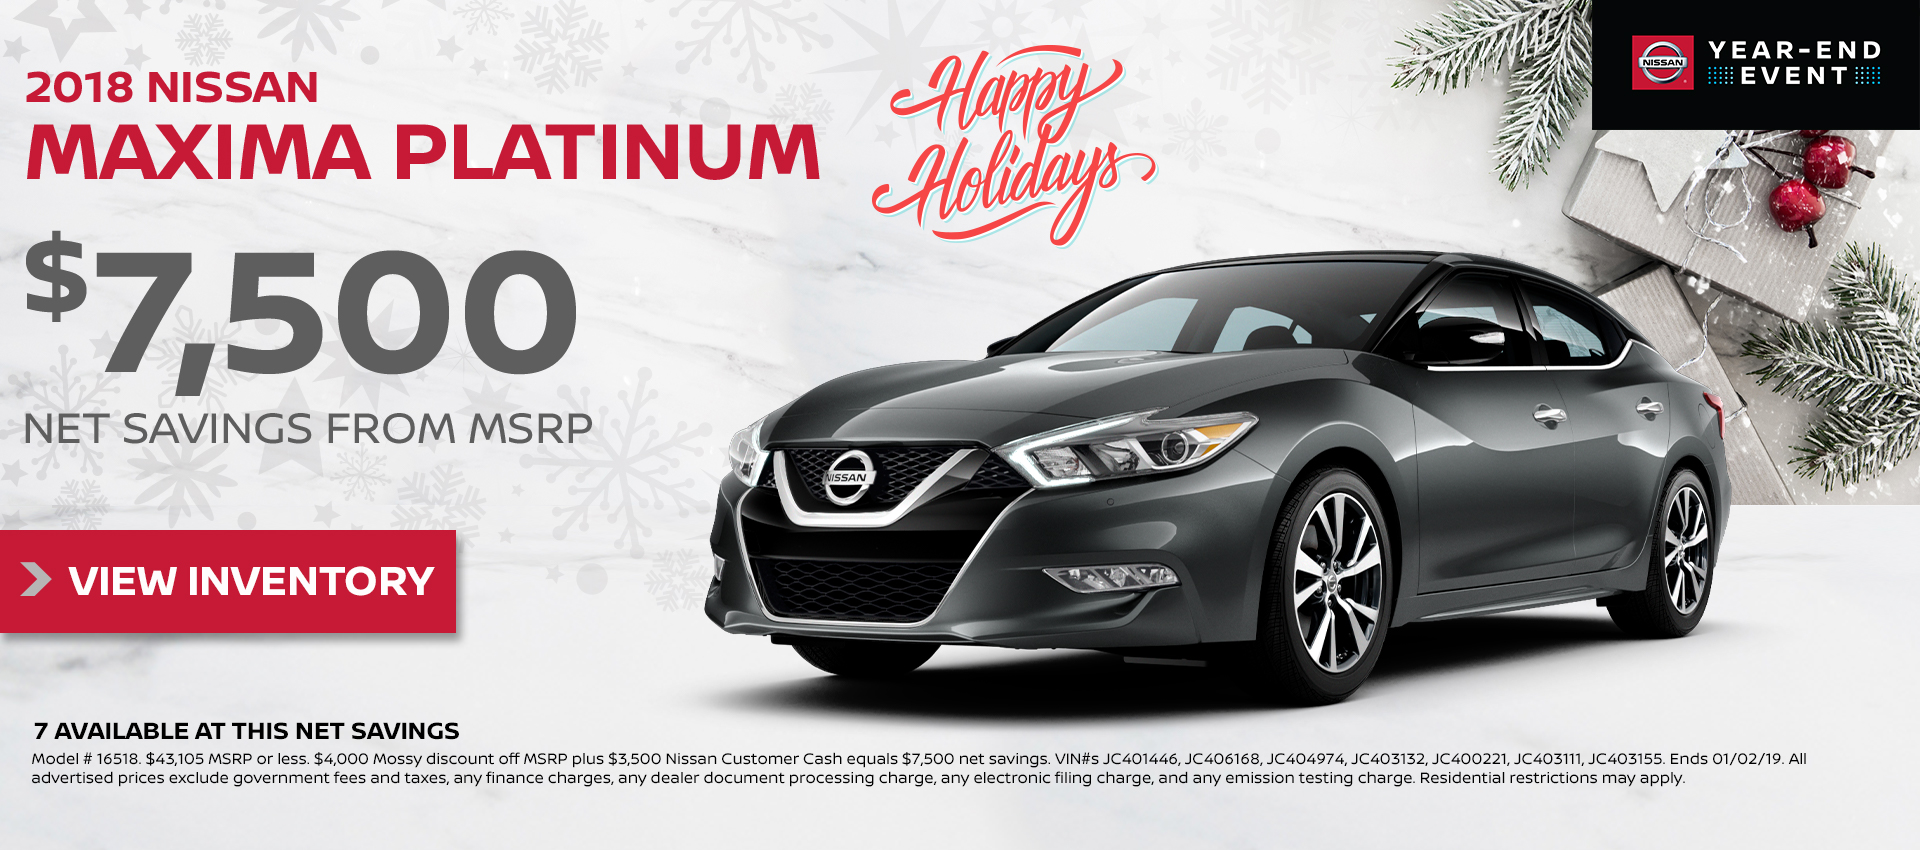 Mossy Nissan - Nissan Maxima $7,500 Off MSRP HP